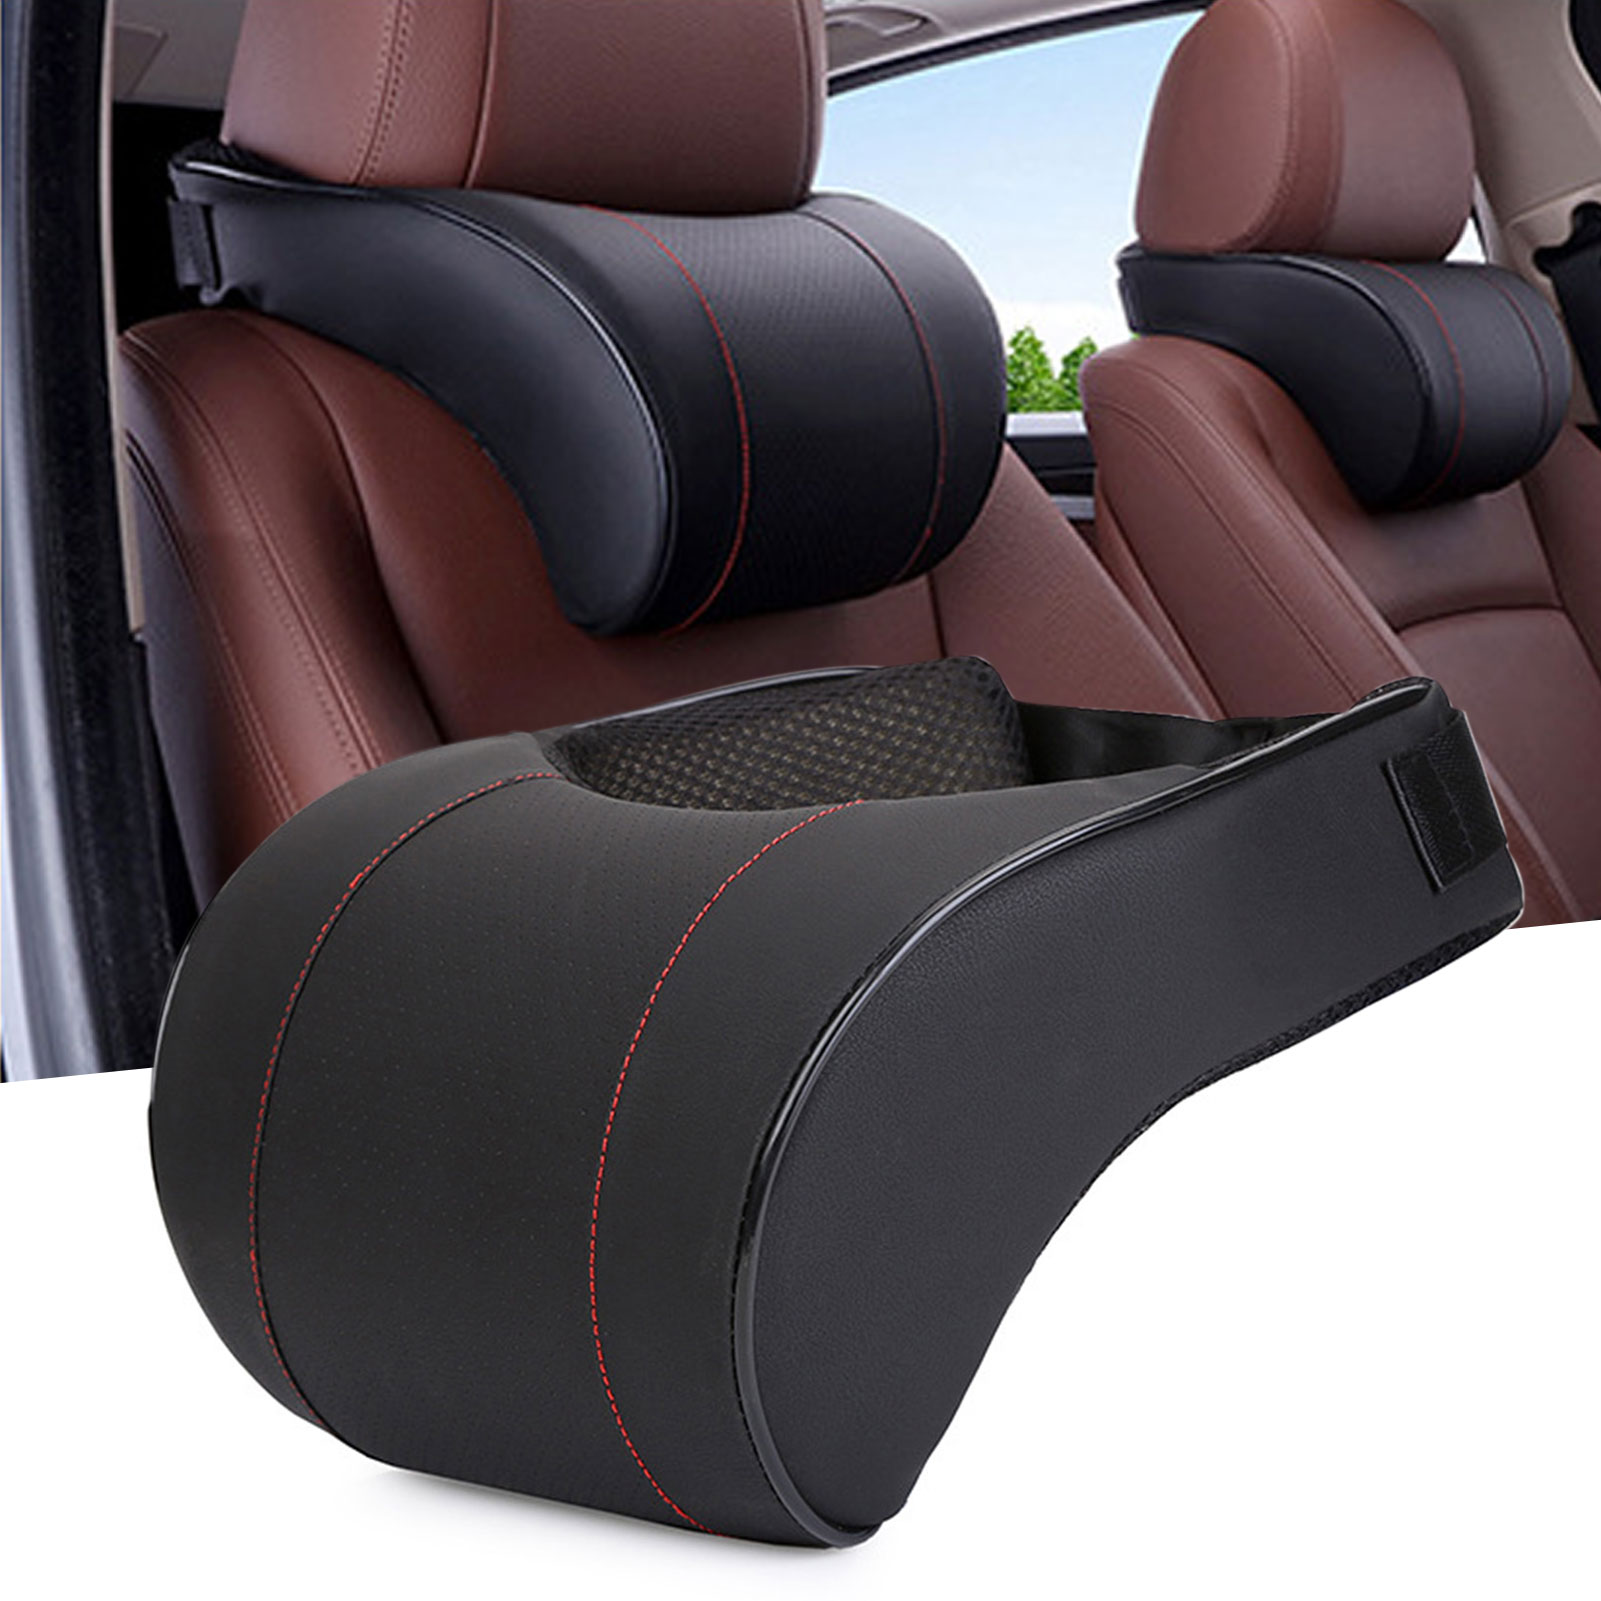 Memory Foam Car Headrest Pillow PU Leather Adjustment Auto Neck Rest Lumbar Pillows Travel Car Seat Headrest Cushion